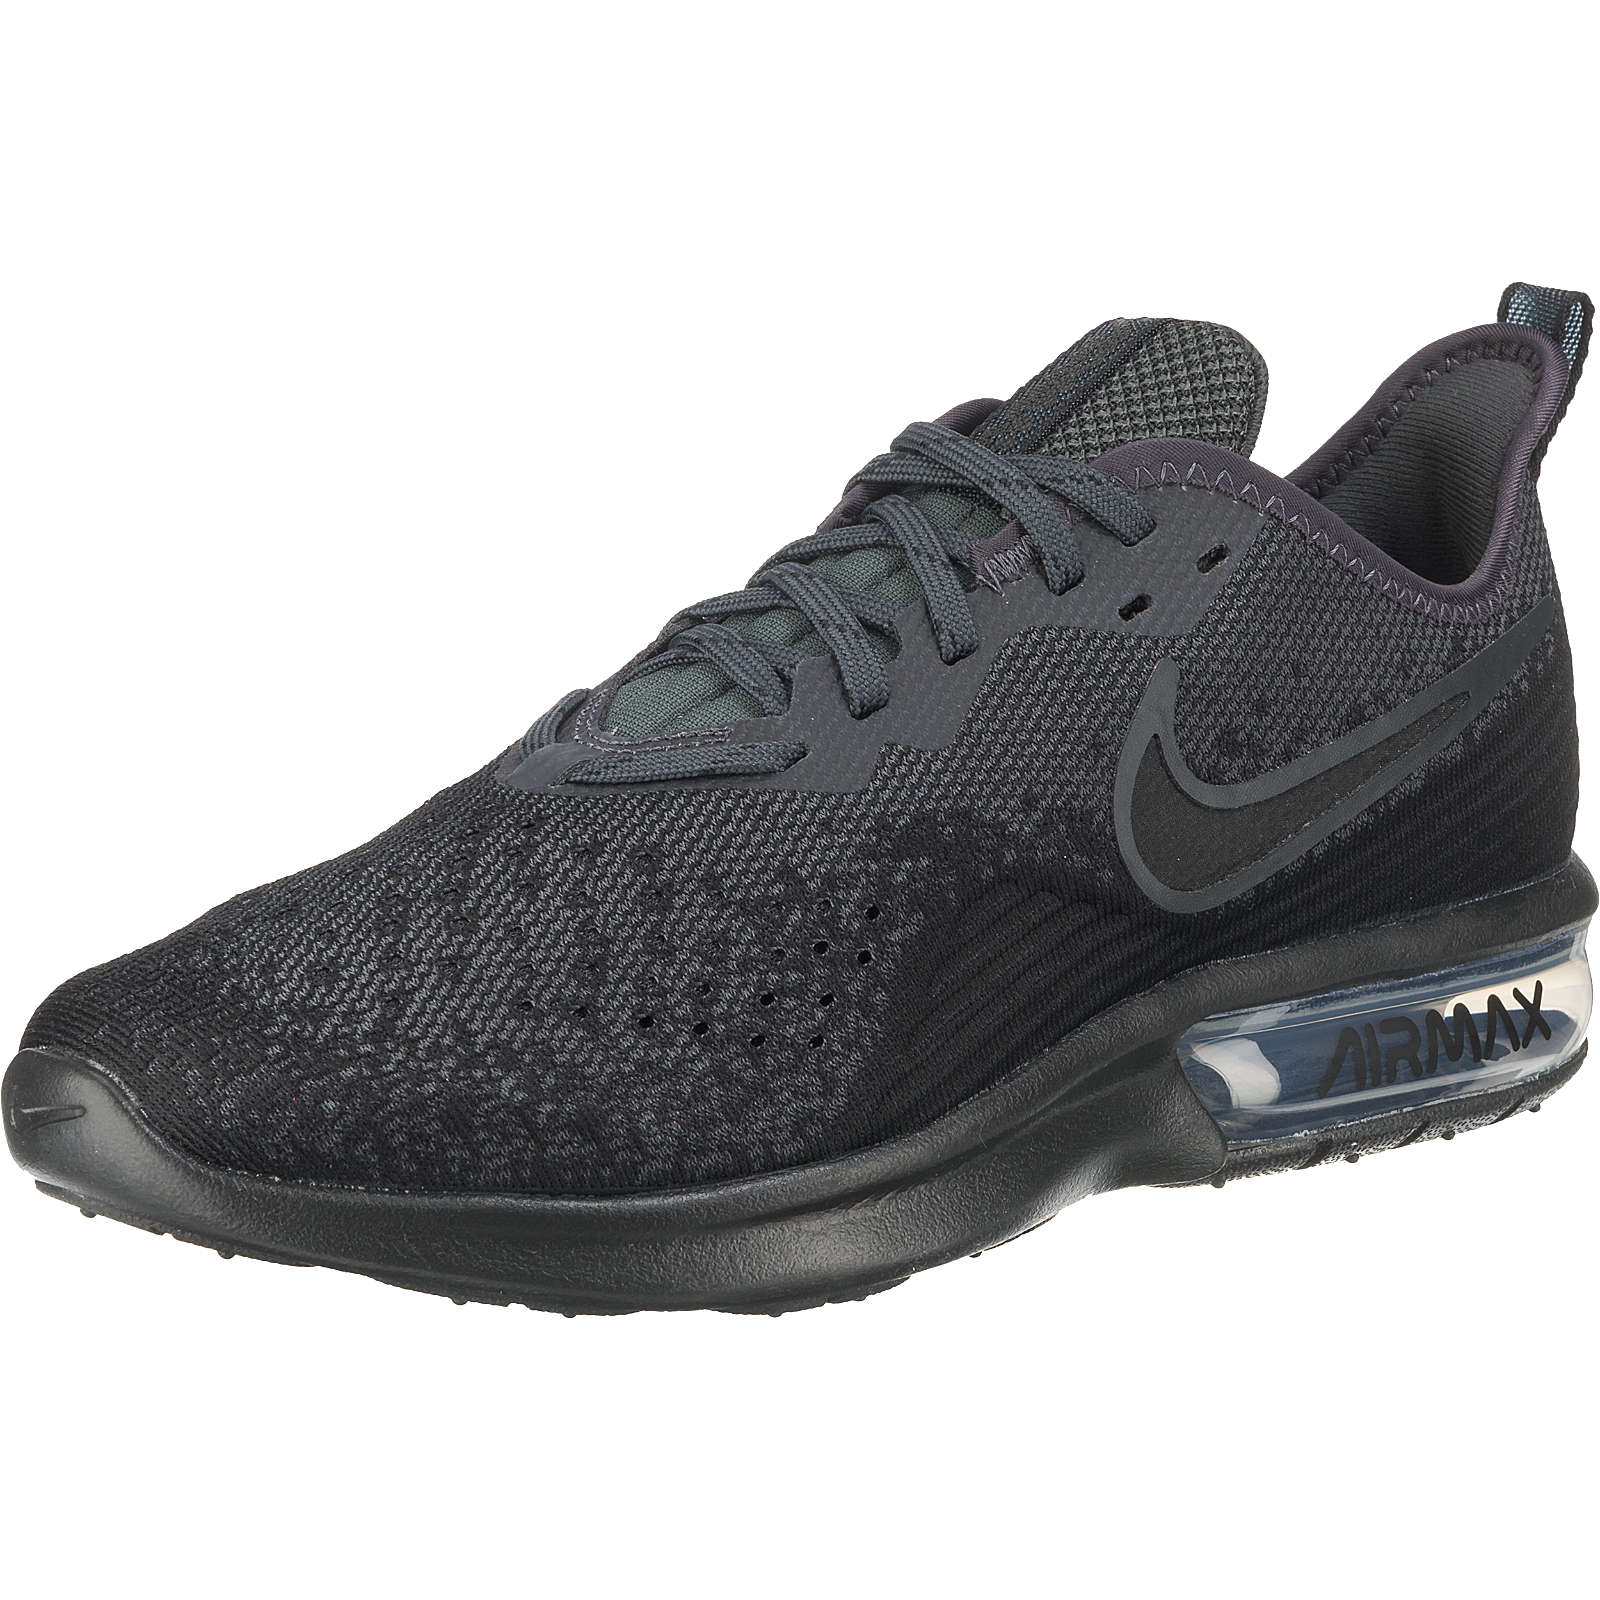 Nike Performance Air Max Sequent 4 Laufschuhe schwarz Herren Gr. 44